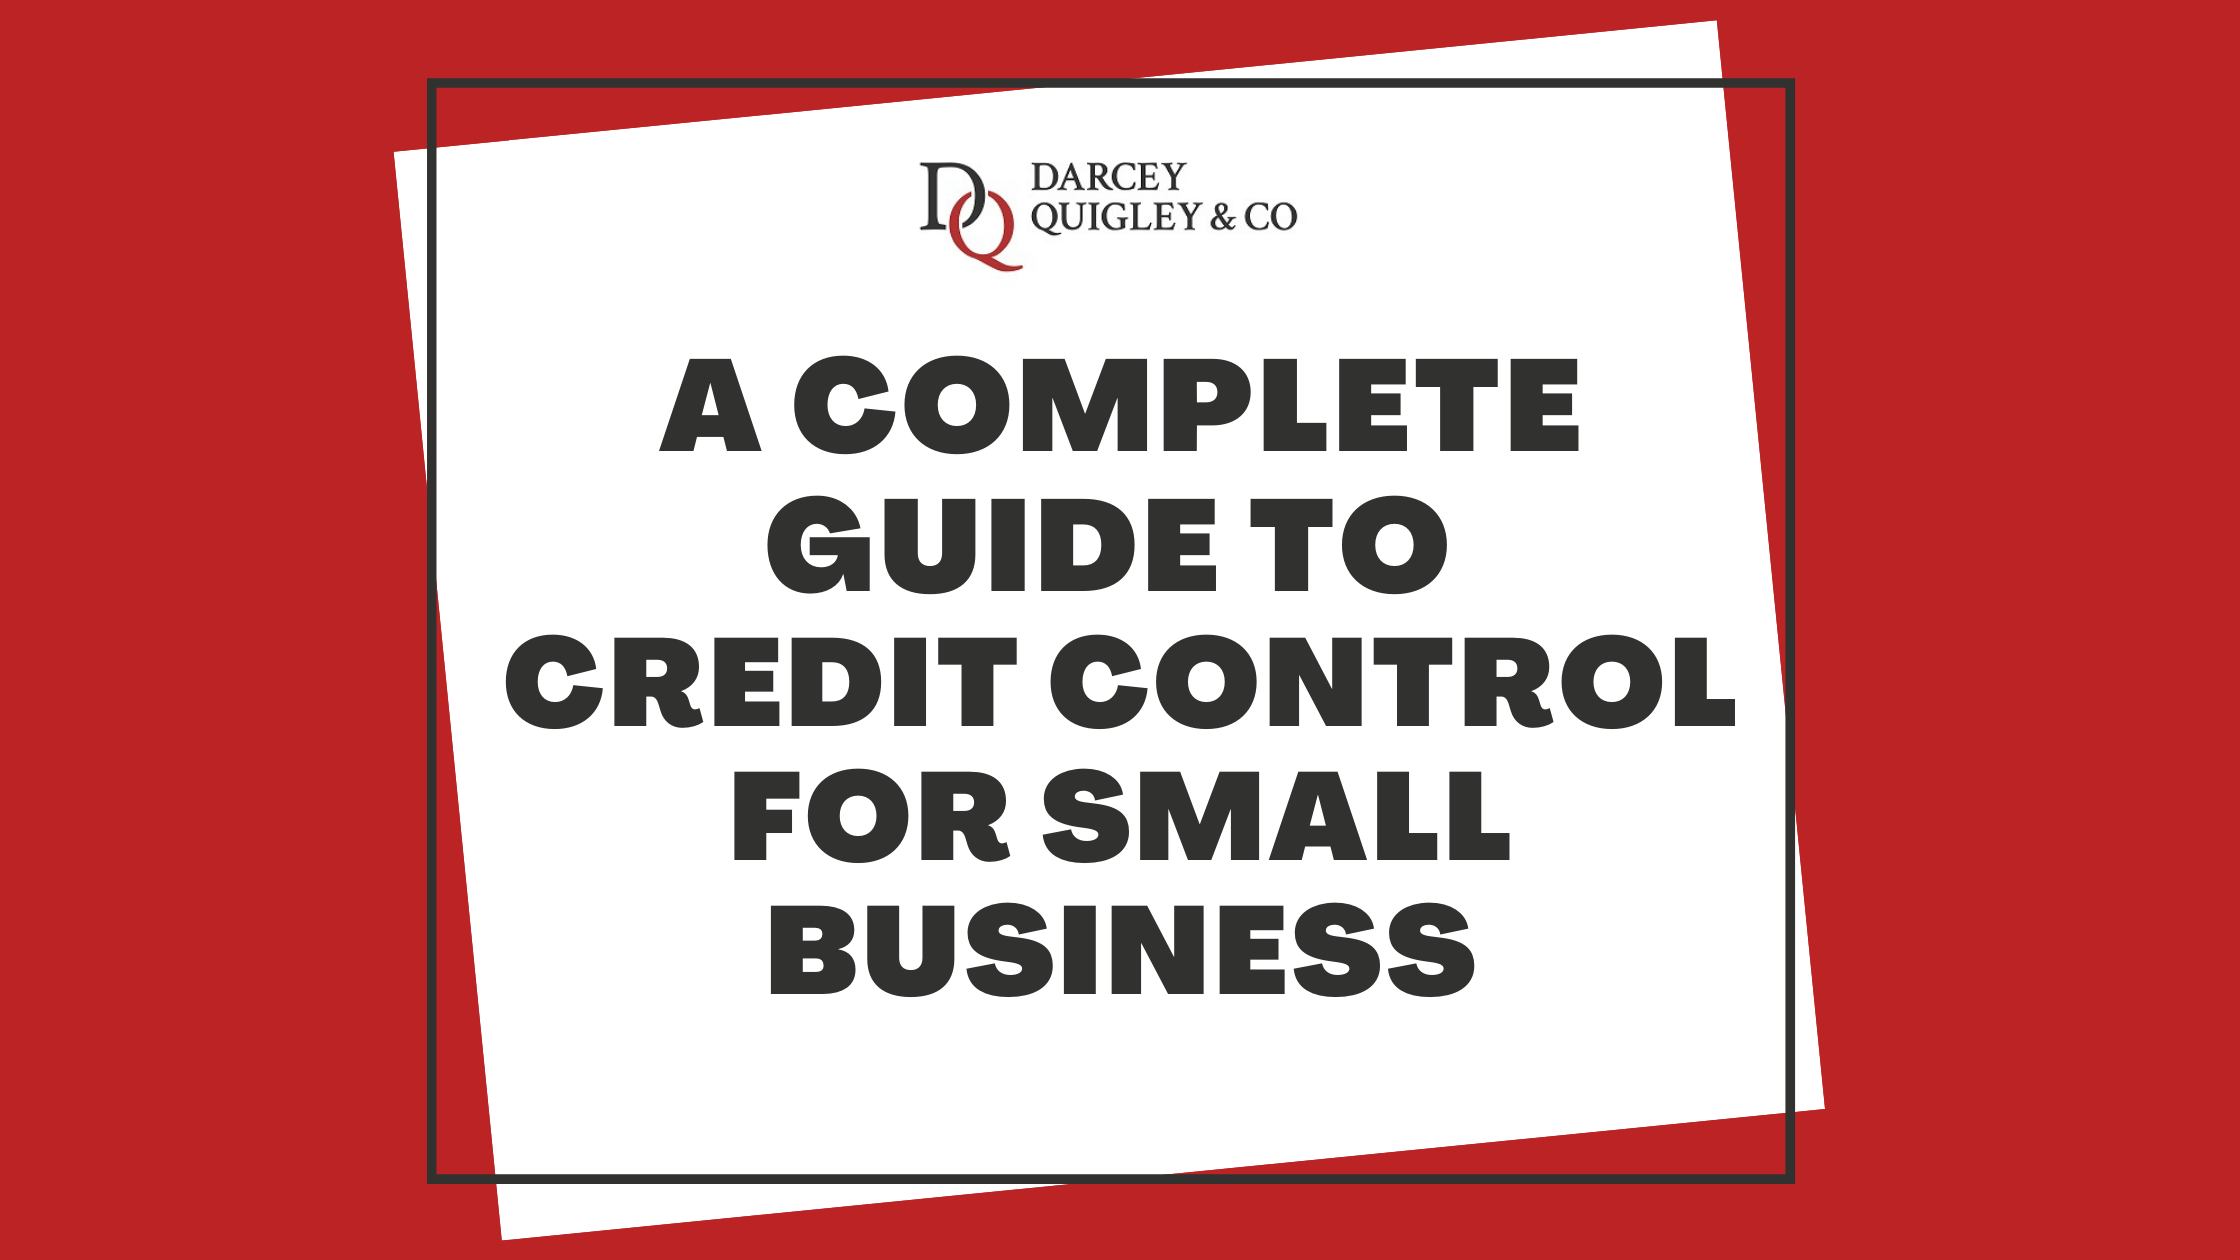 Image for the article A Complete Guide To Credit Control For Small Business